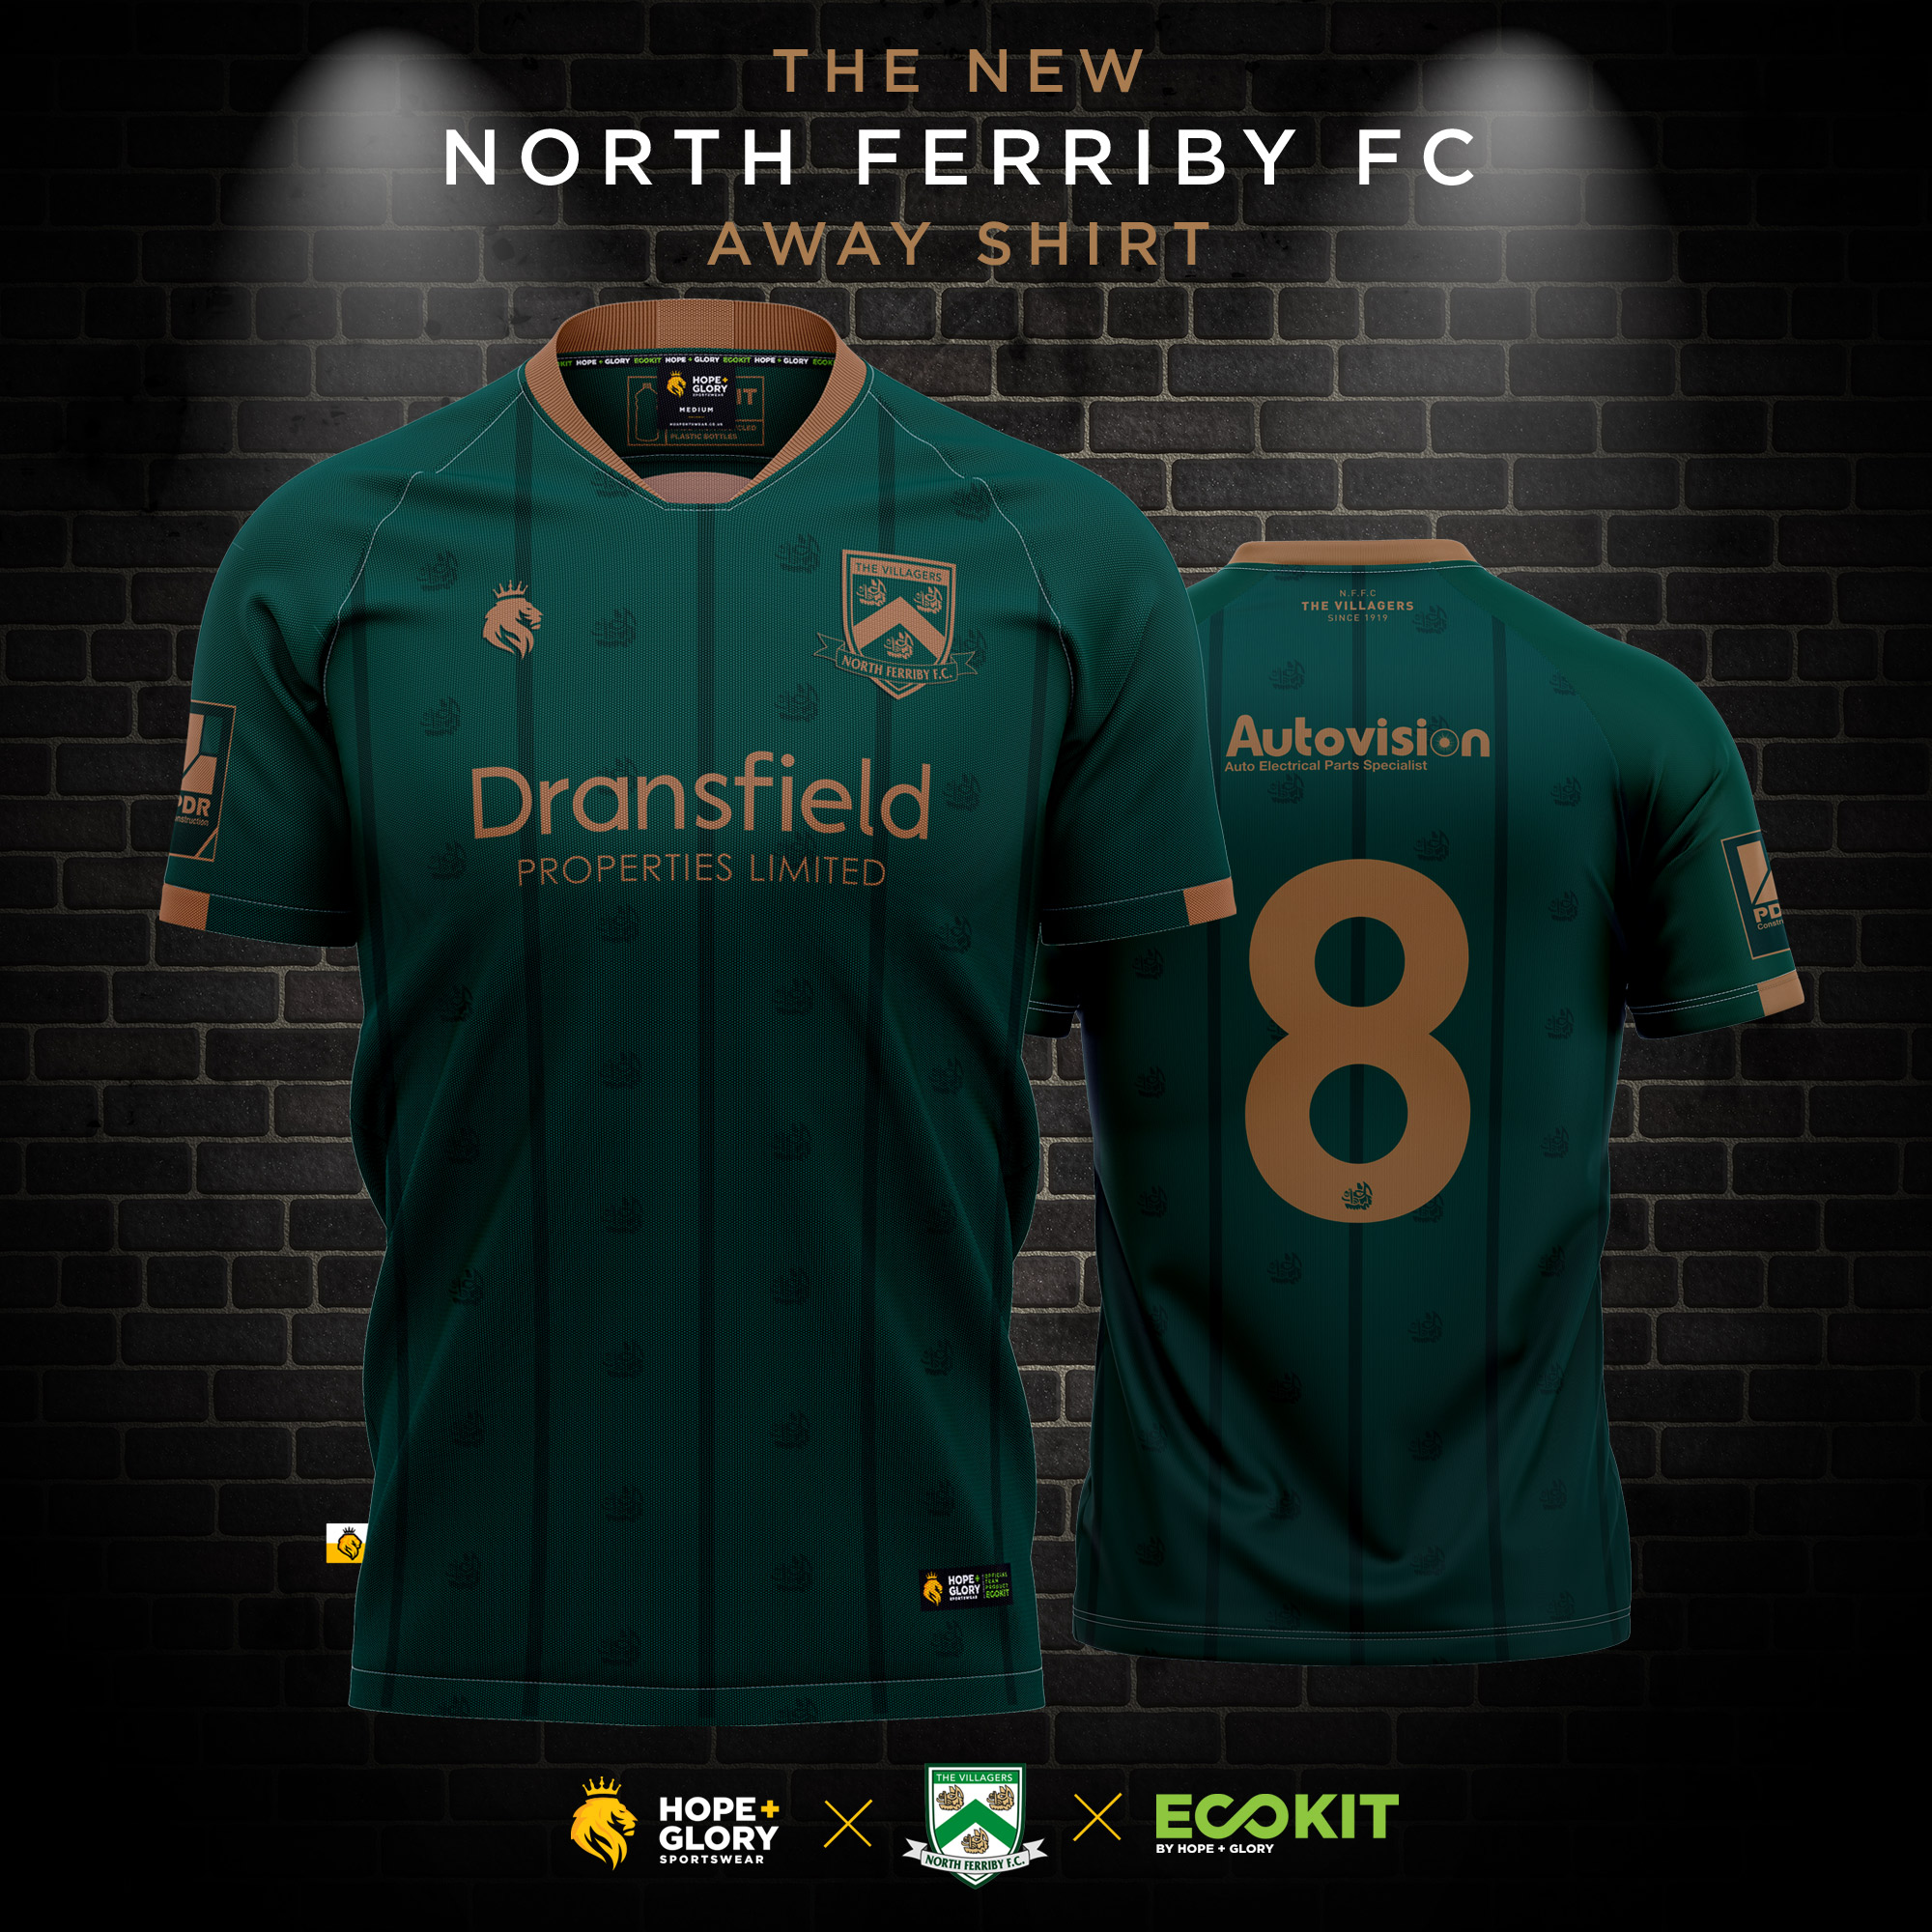 New 'away' shirt for 2020/21